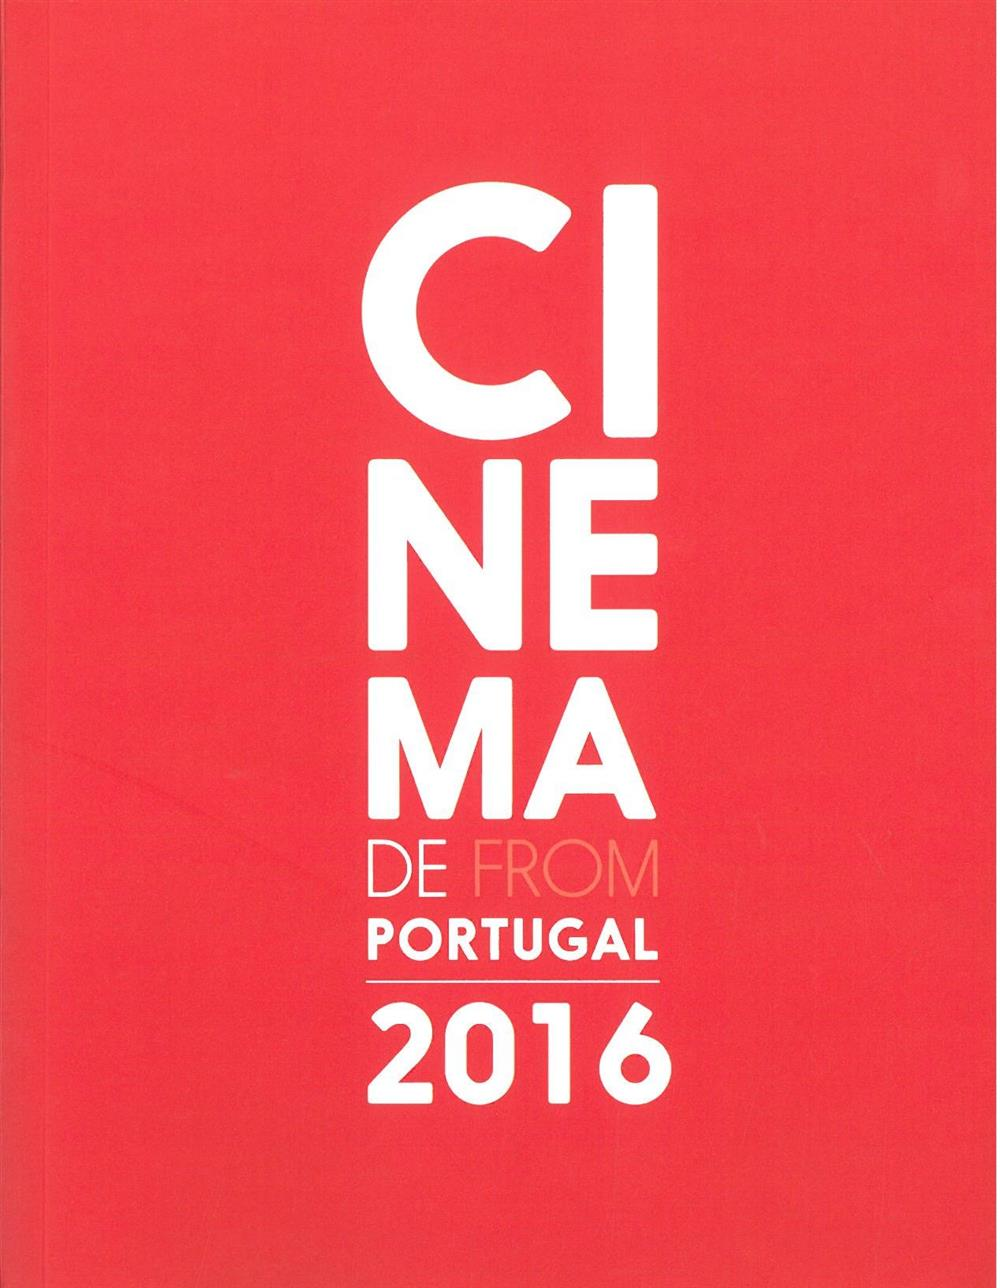 Cinema de Portugal_.jpg